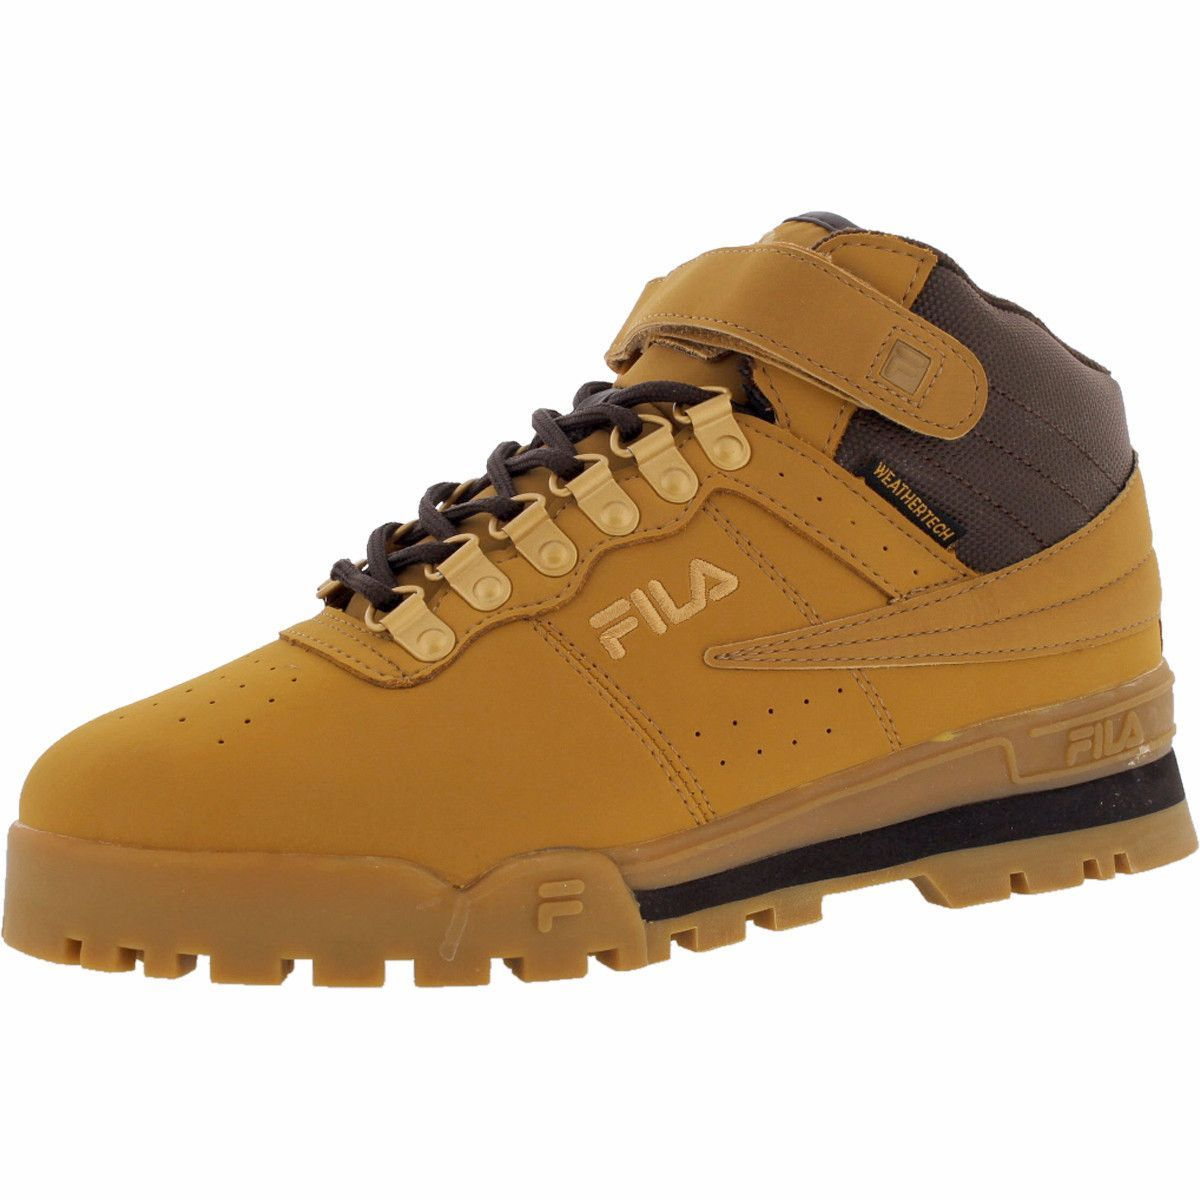 fila shoes limassol weather tomorrow weather forecasts